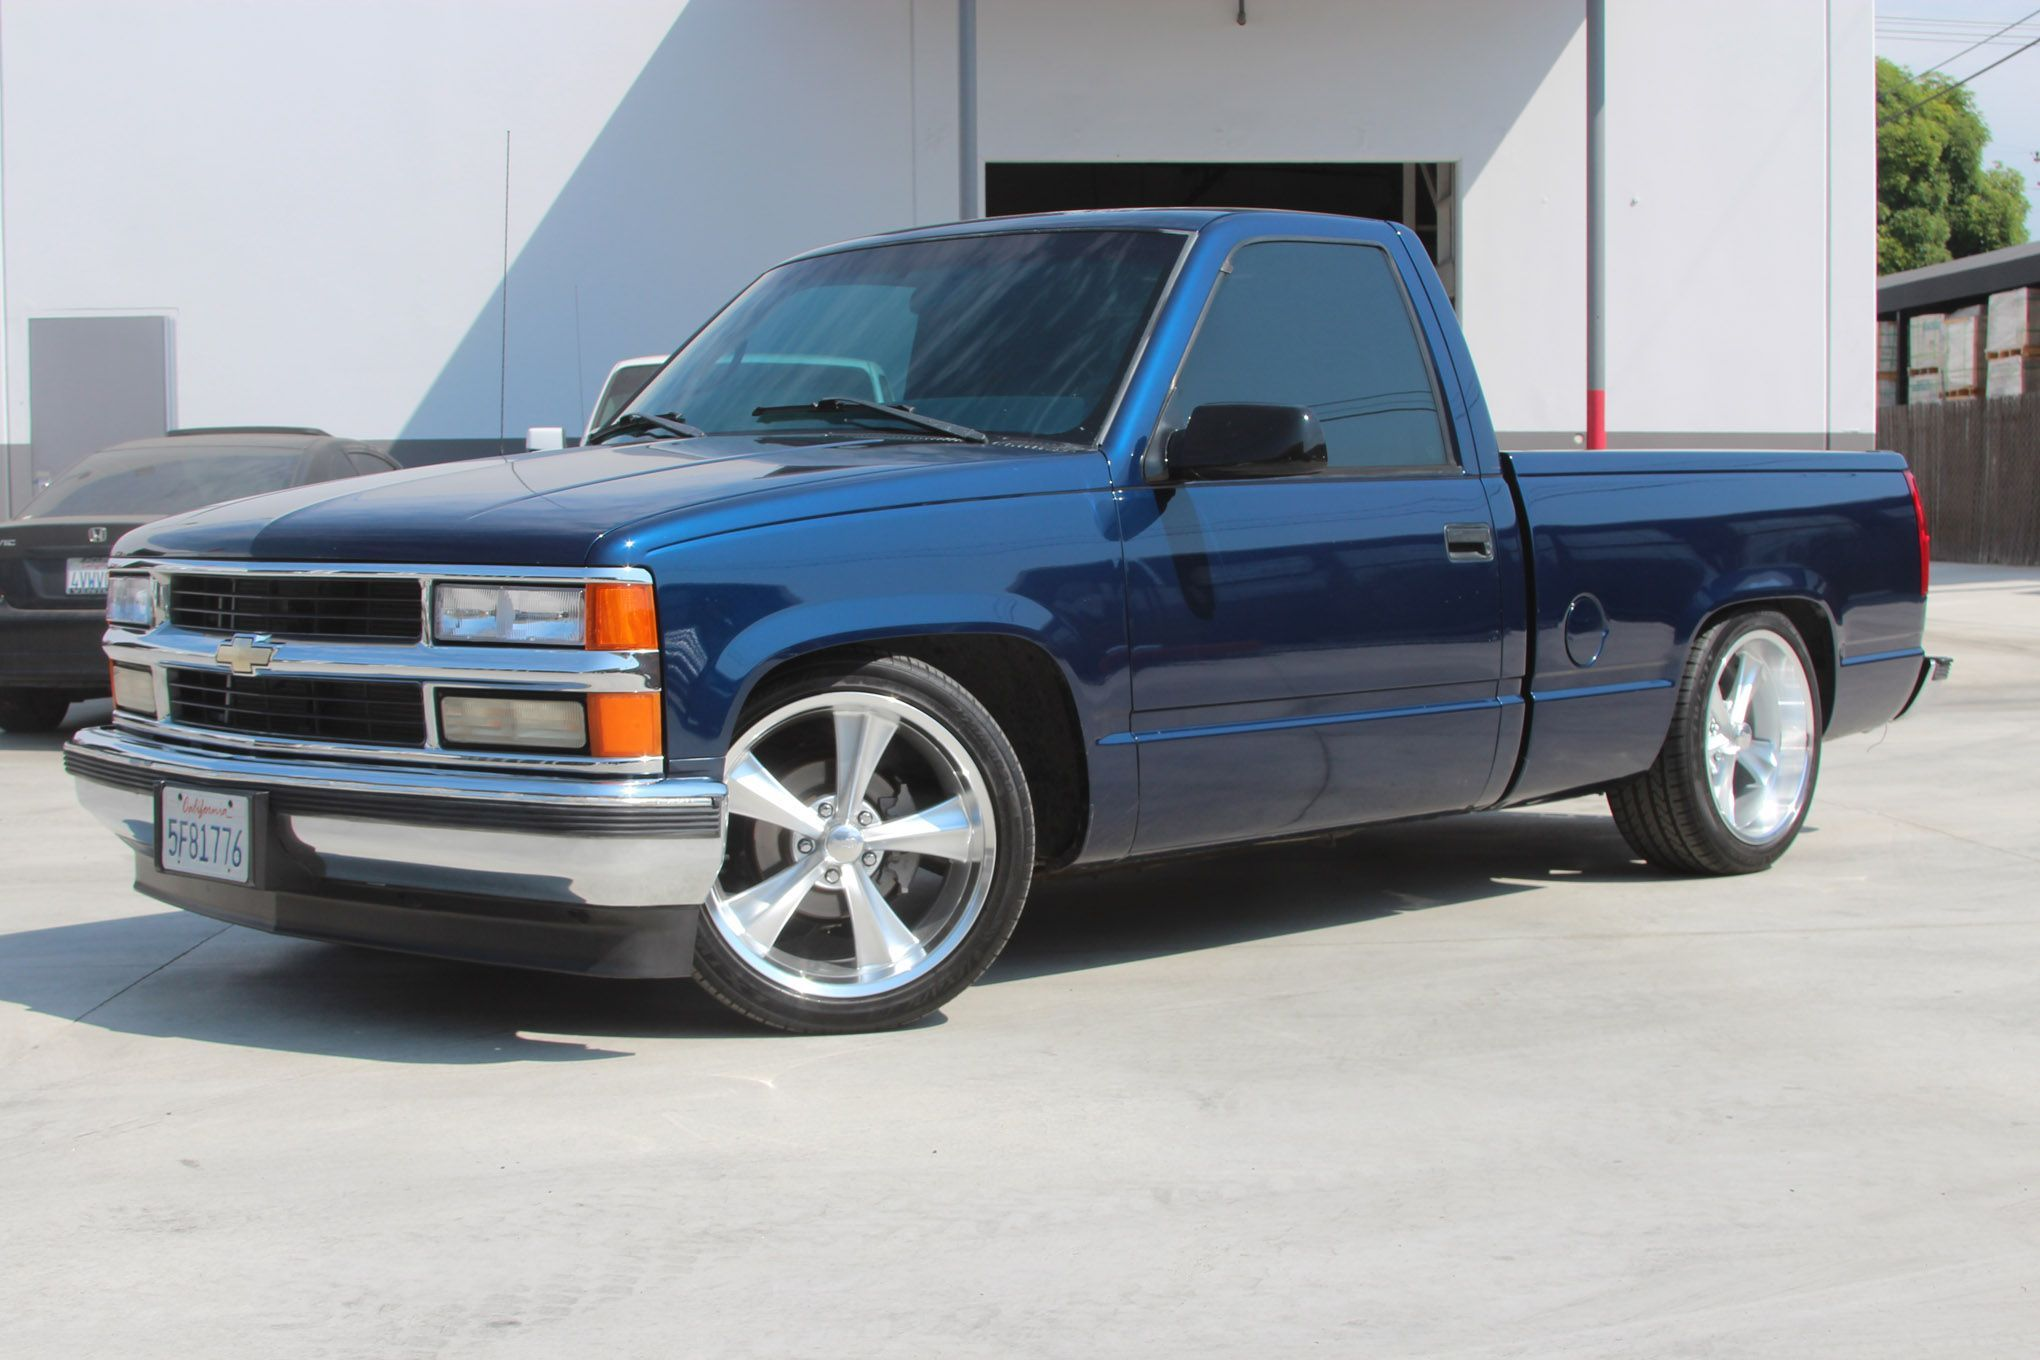 We re Lowering the 1996 Chevy C1500 that Started the whole sport